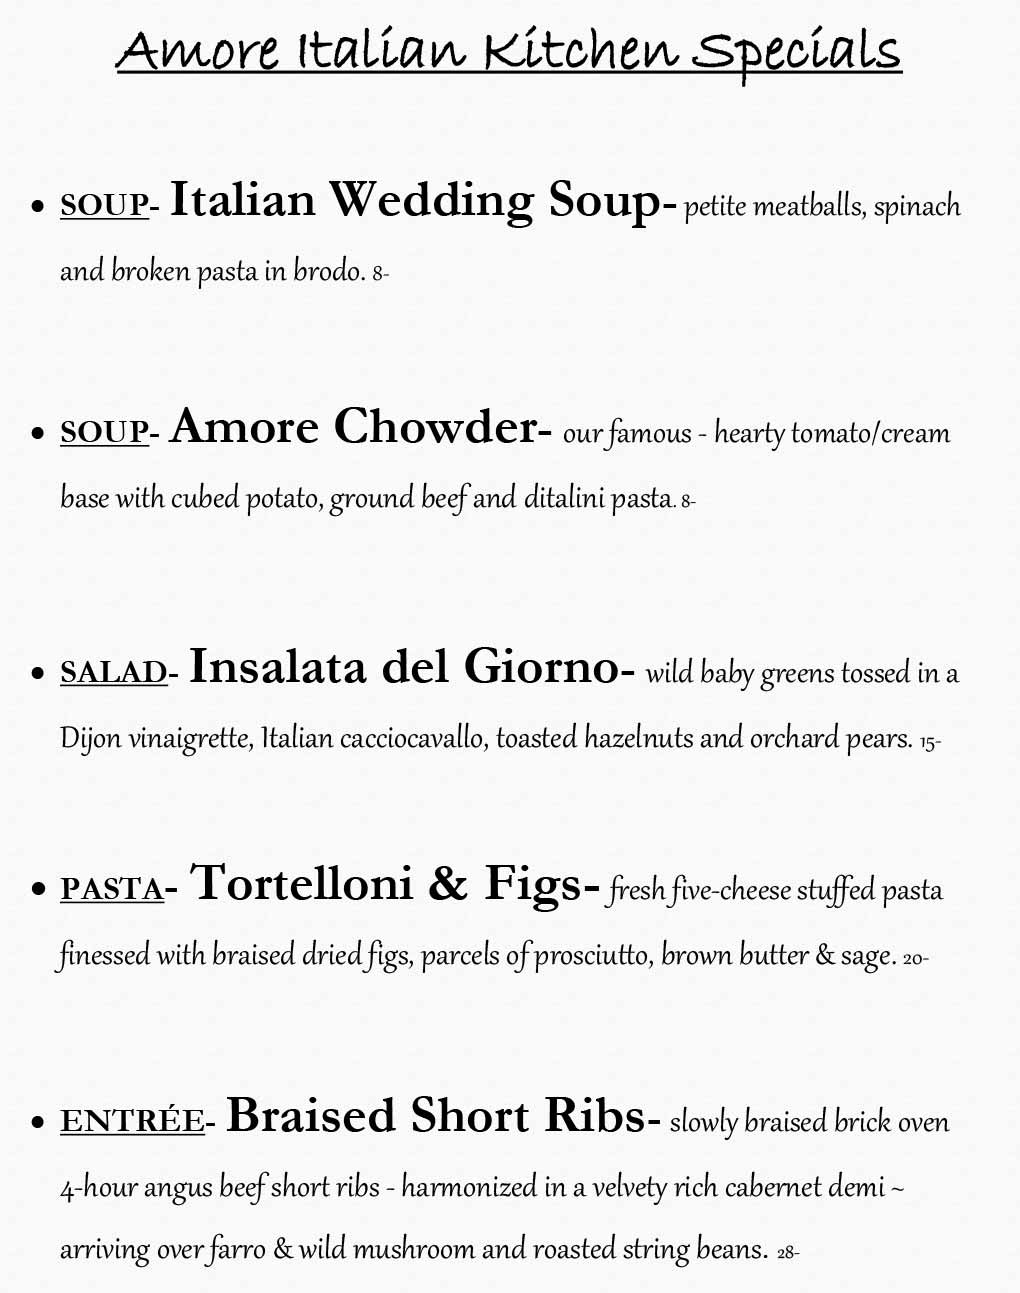 Amore Weekly Specials from 11/09- 11/15